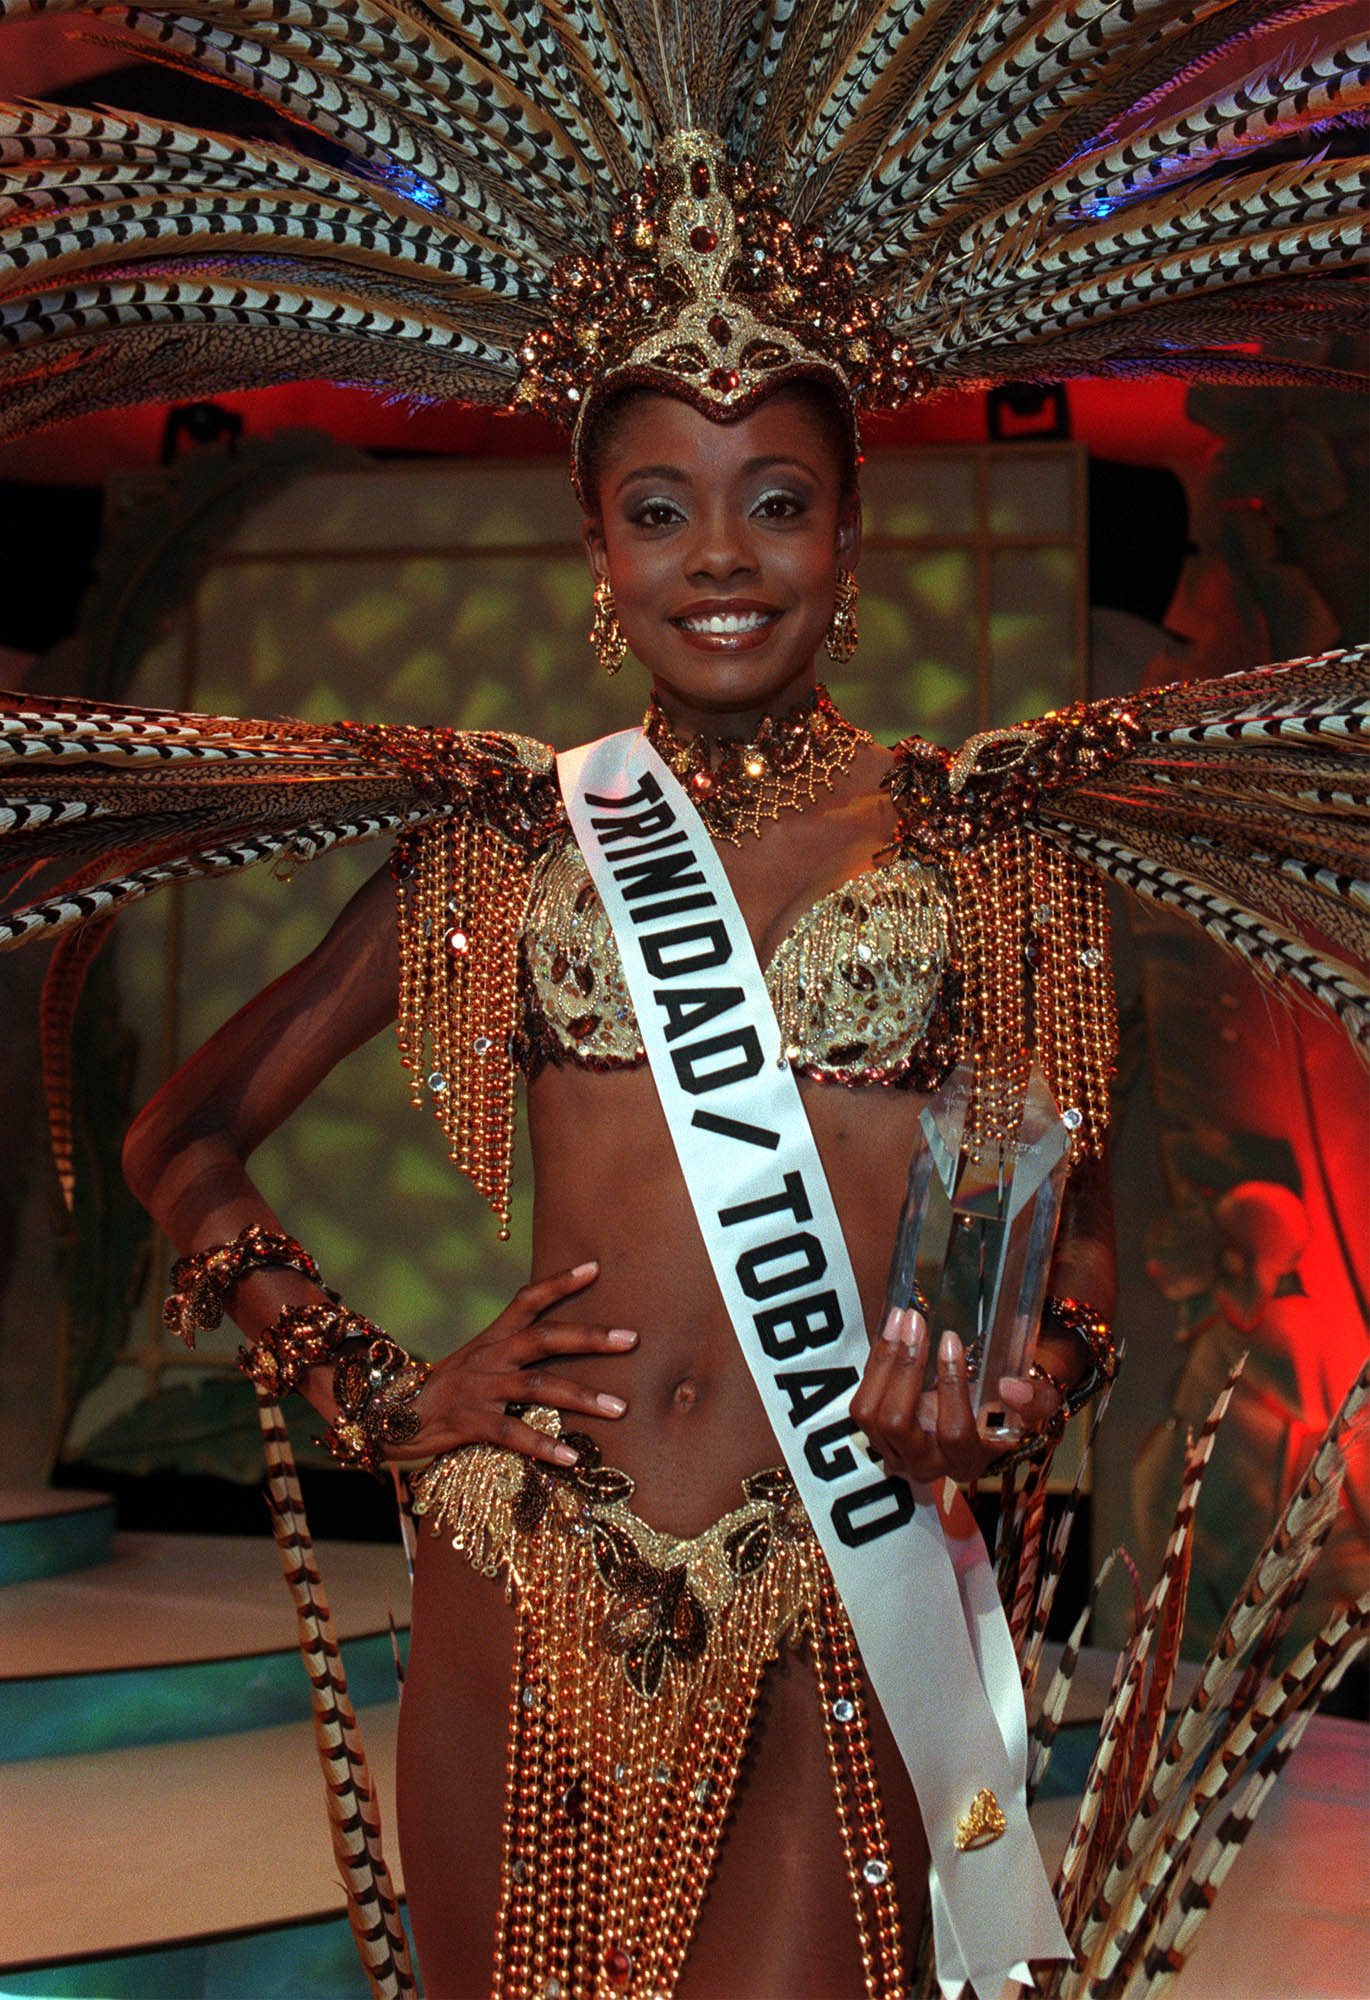 cba70d243 IN PHOTOS: 11 iconic Miss Universe National Costumes